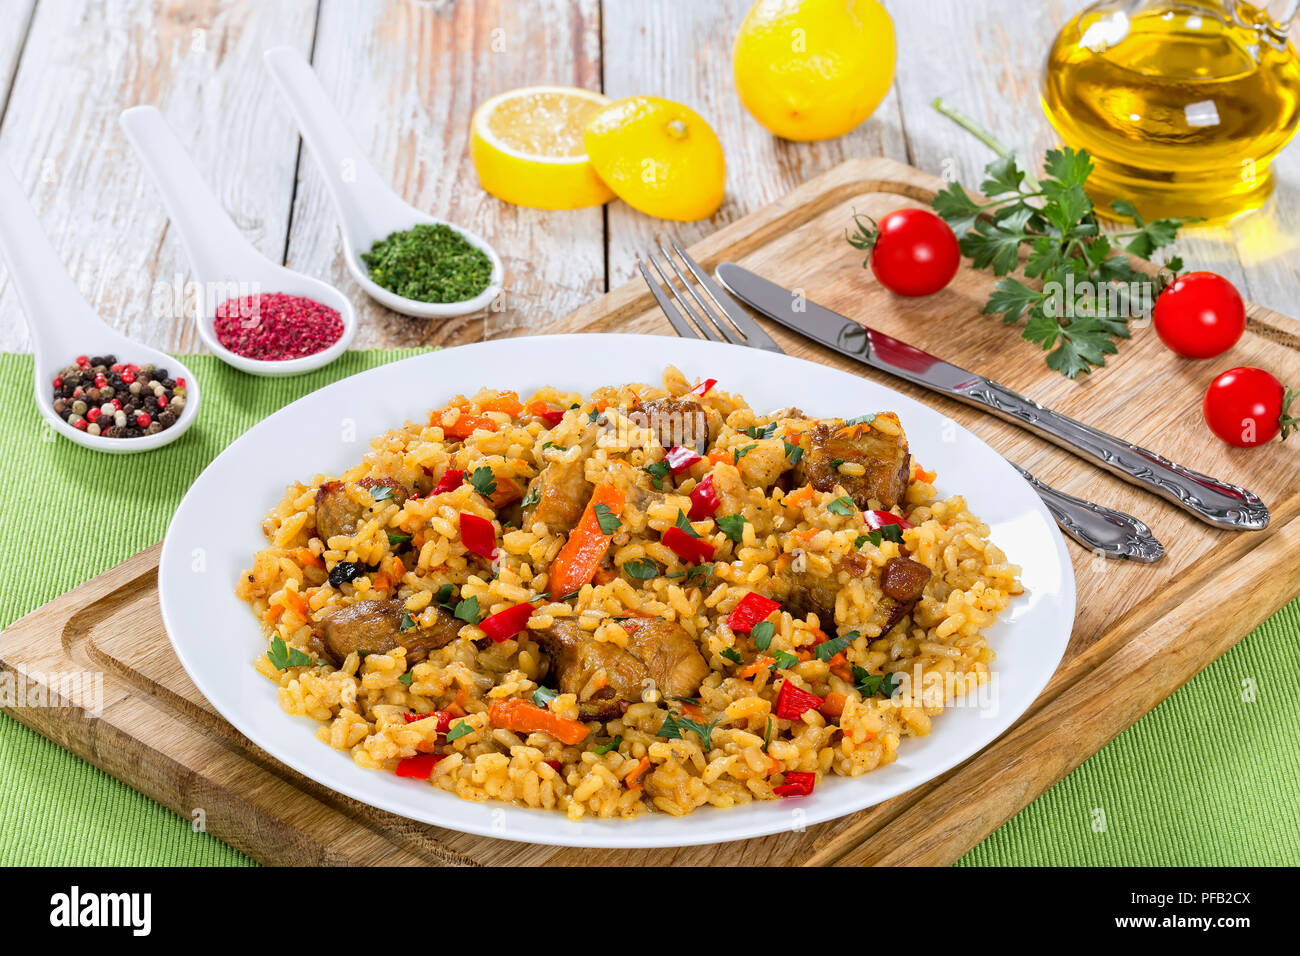 tasty paella with meat, pepper, vegetables and spices on platter on cutting board, lemon slice, spices and cherry tomatoes on background, view from ab - Stock Image